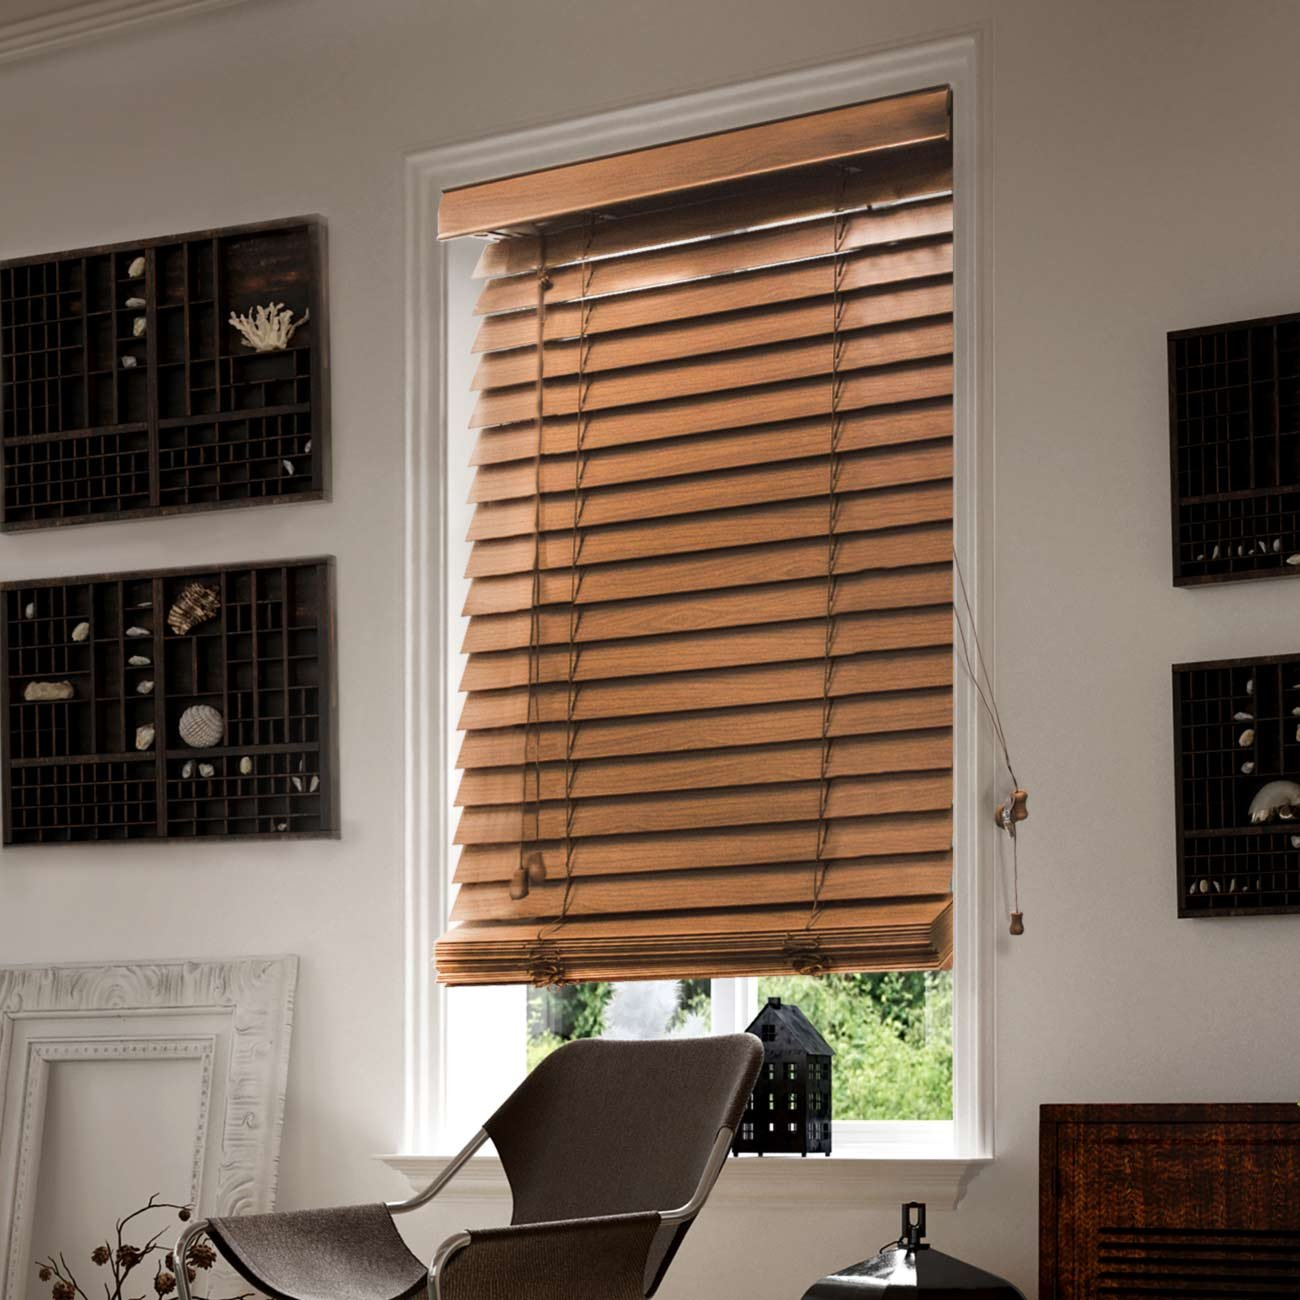 CHICOLOGY Faux Wood Blinds/window horizontal 2-inch venetian slat, Faux Wood, Variable Light Control - Simply Brown, 35'' W X 64'' H by CHICOLOGY (Image #3)